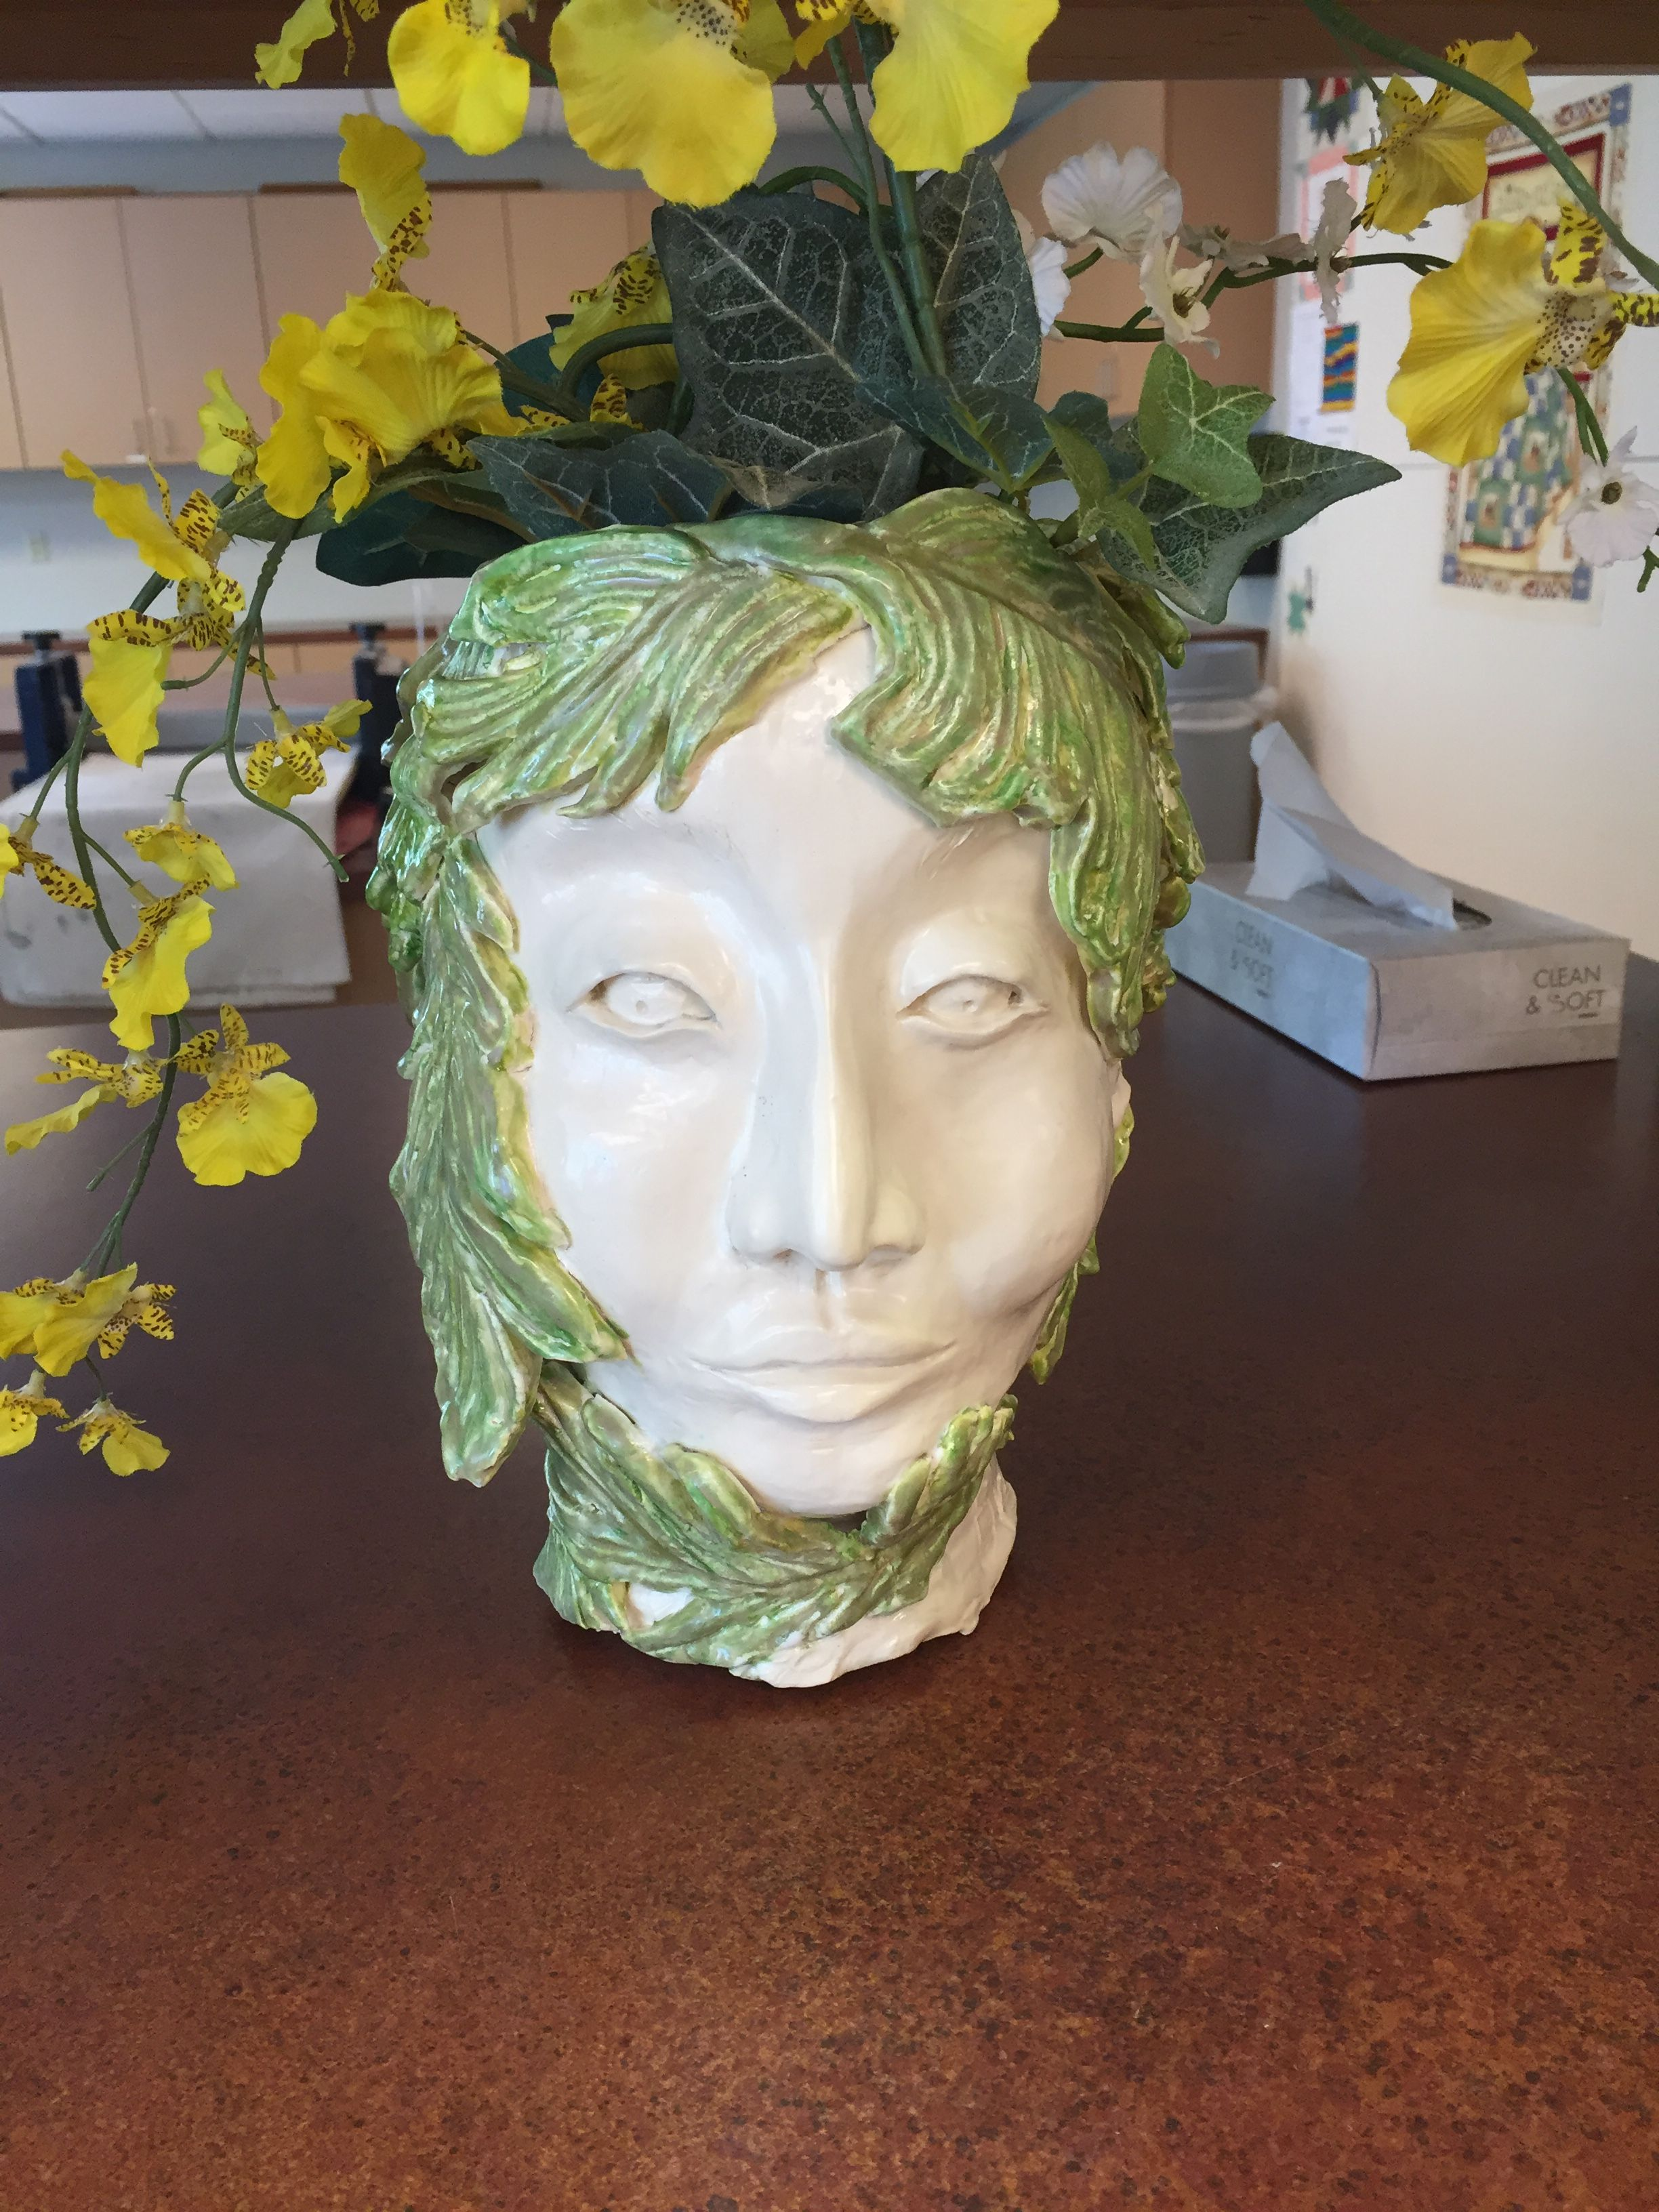 Head planter of clay by Barbara Fronce from Sculpture Class at The Highlands at Dove Mt Marana AZ 2016